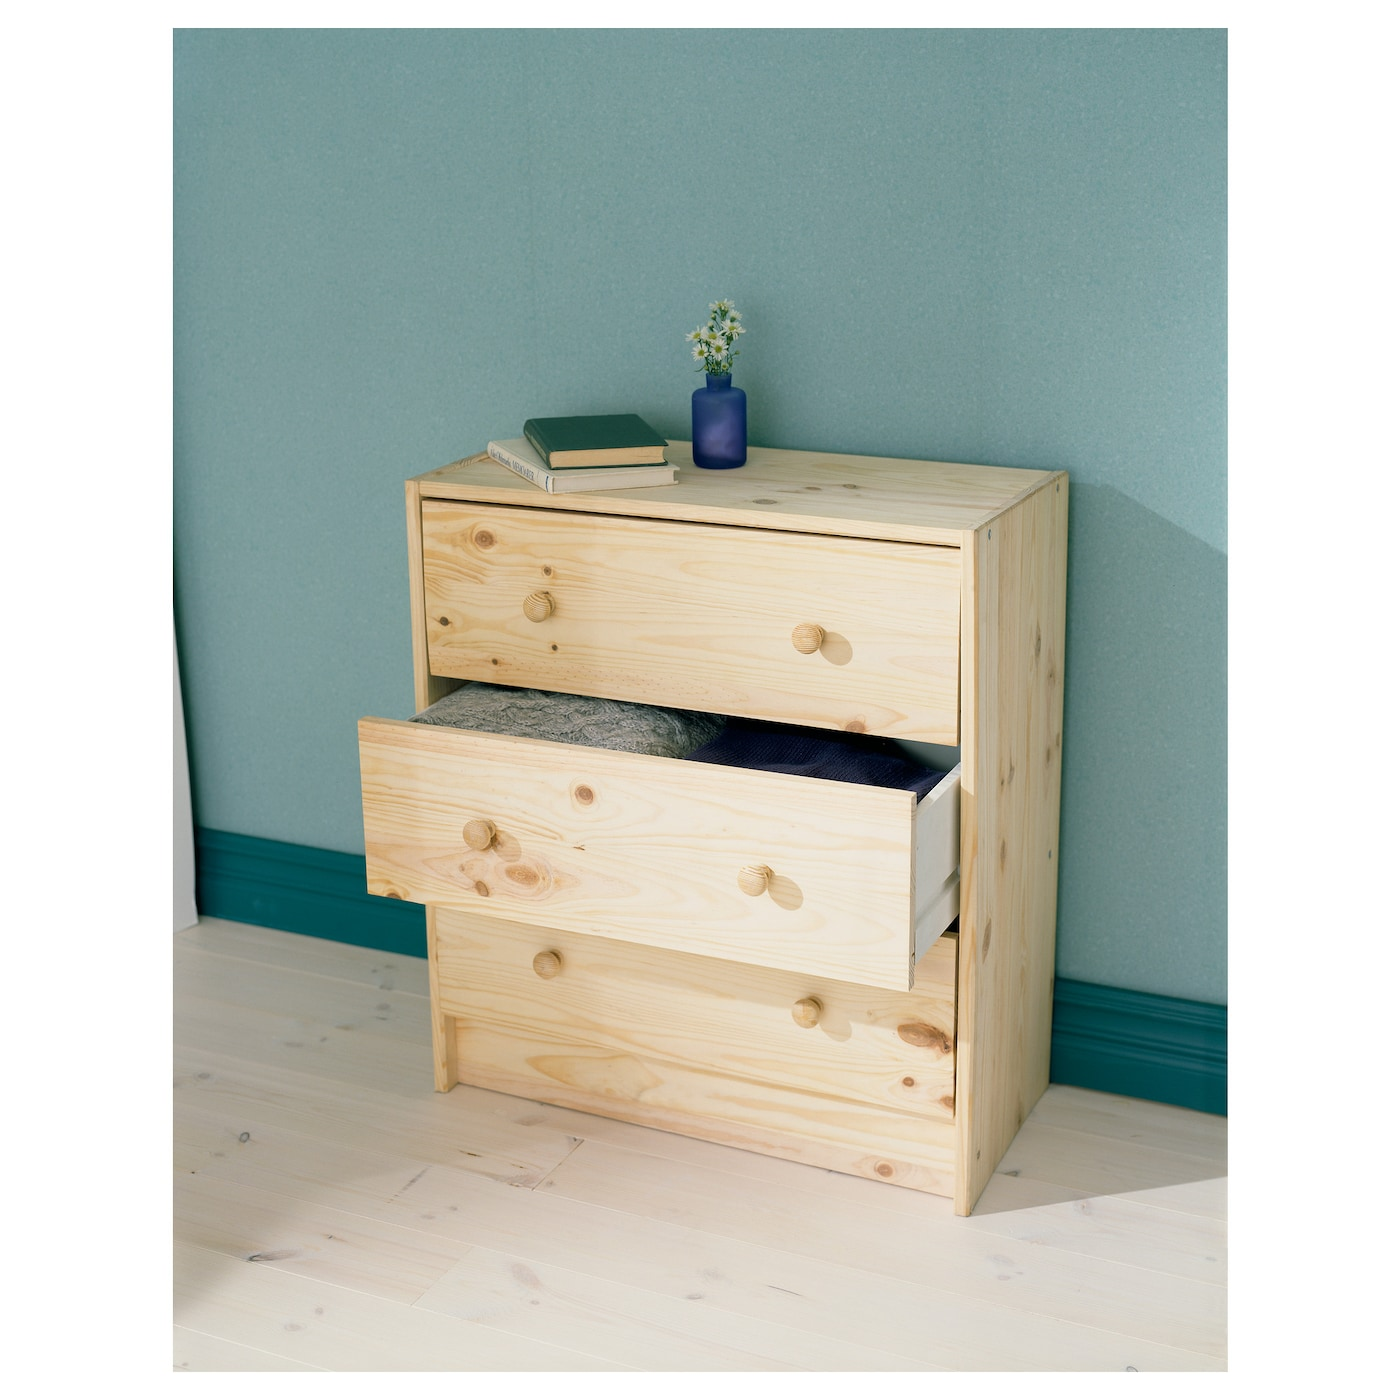 rast chest of 3 drawers pine 62 x 70 cm ikea. Black Bedroom Furniture Sets. Home Design Ideas